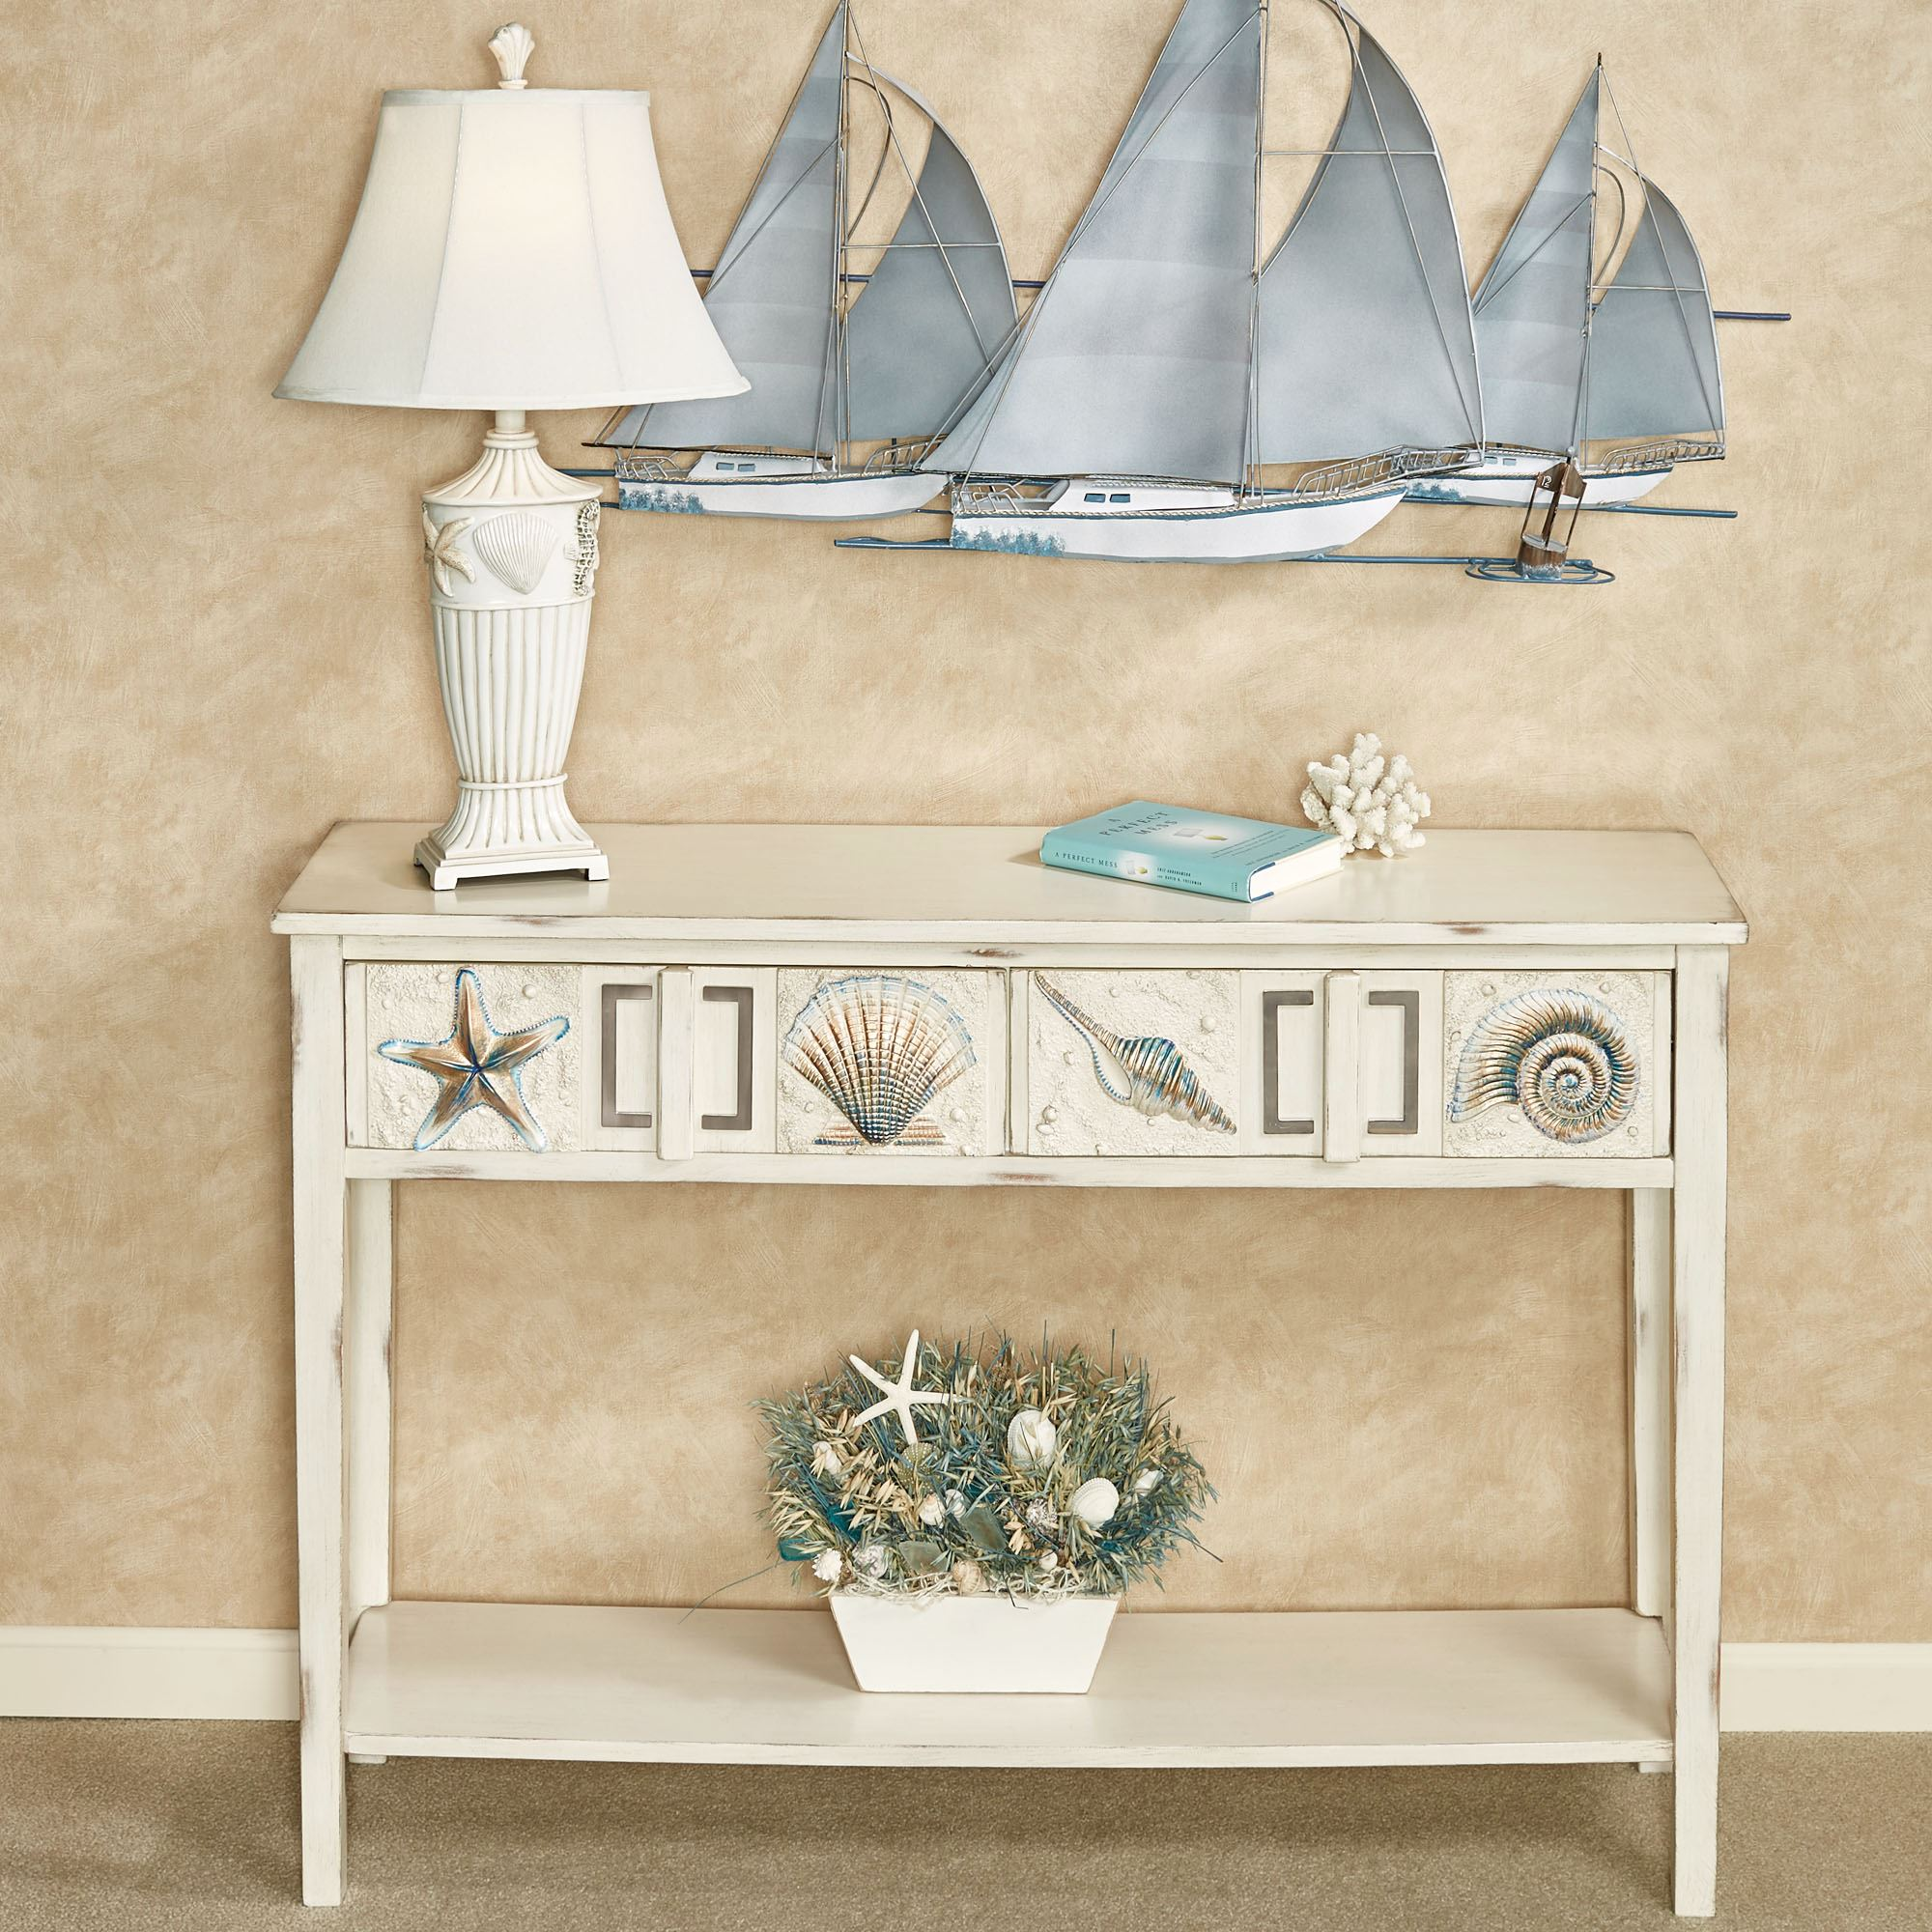 Caspian cove ivory coastal console table with drawers for Sofa table vs console table